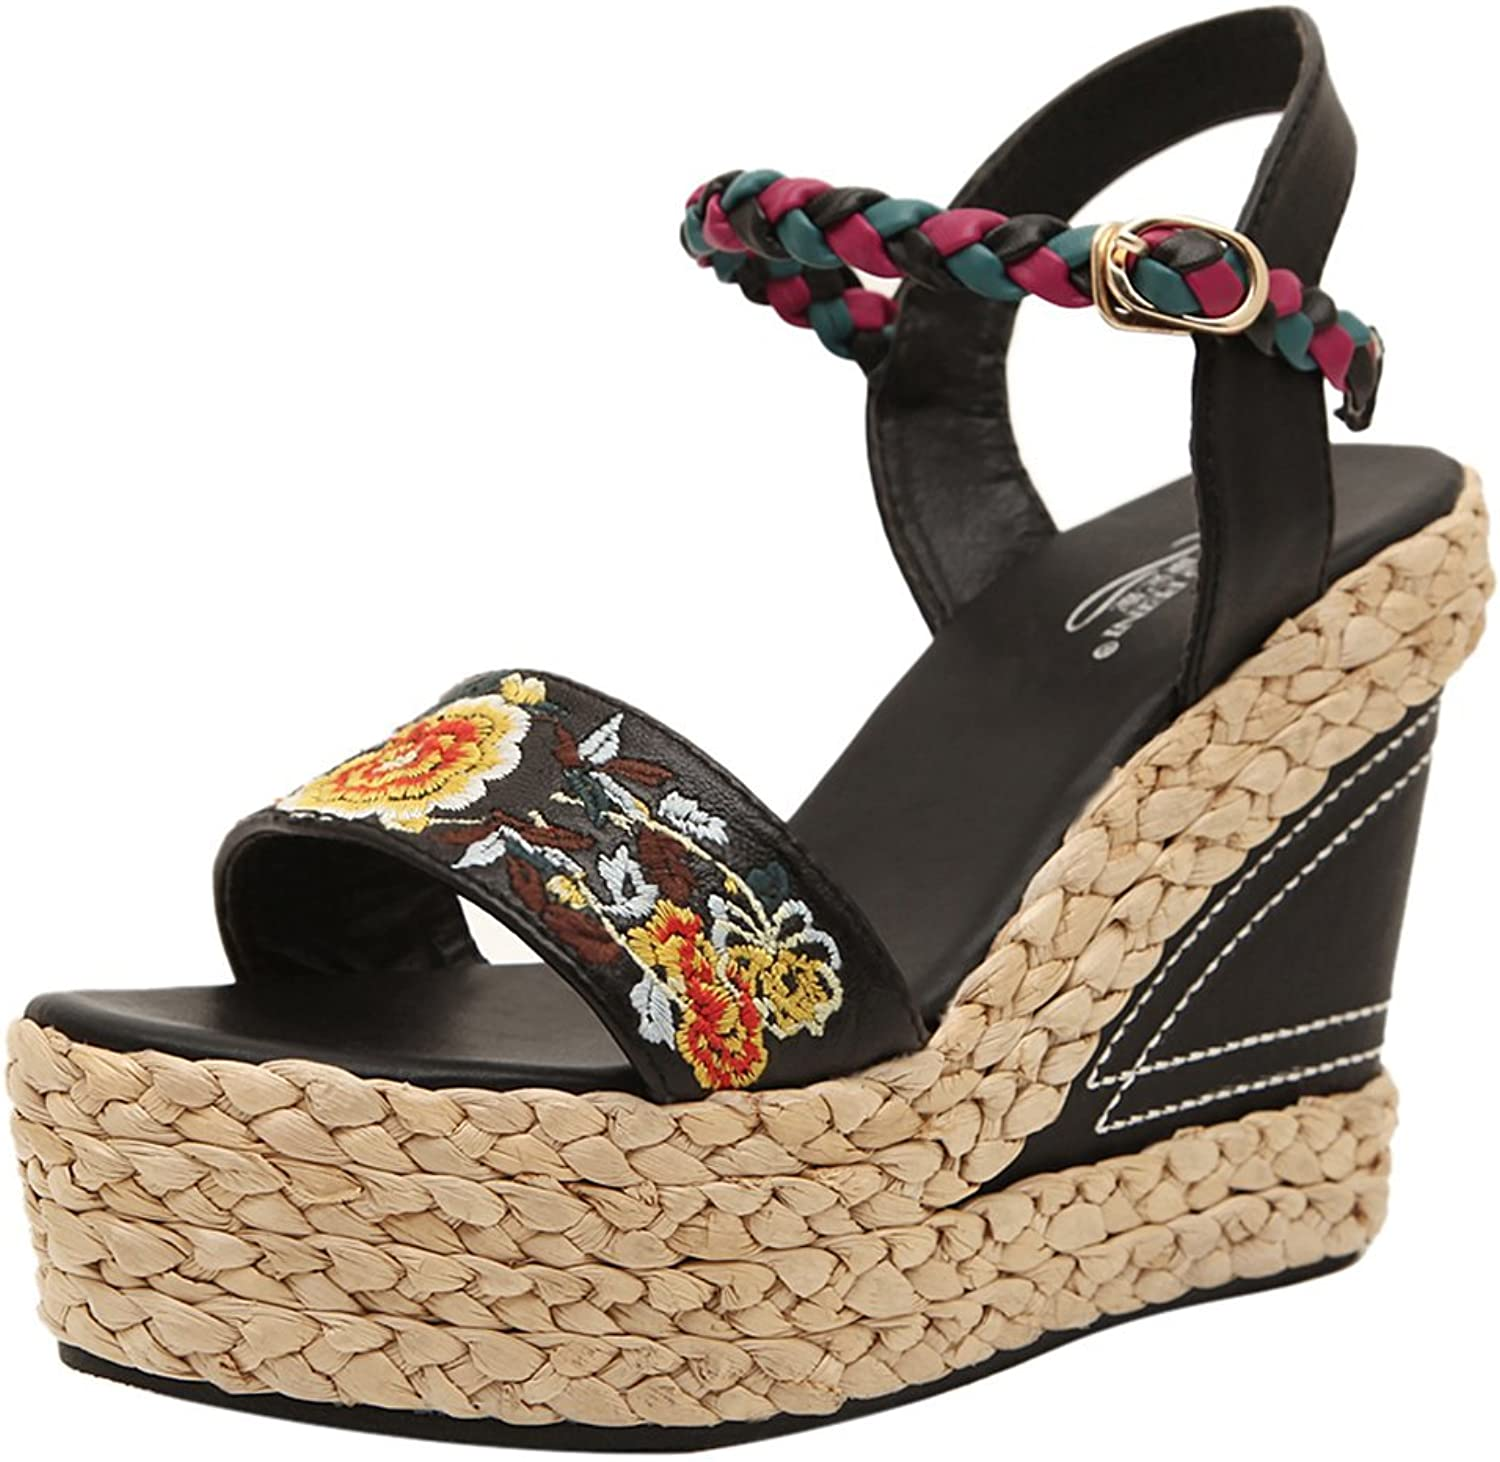 ONCEFIRST Women's Bohemias Ankle Strap Wedge Sandal